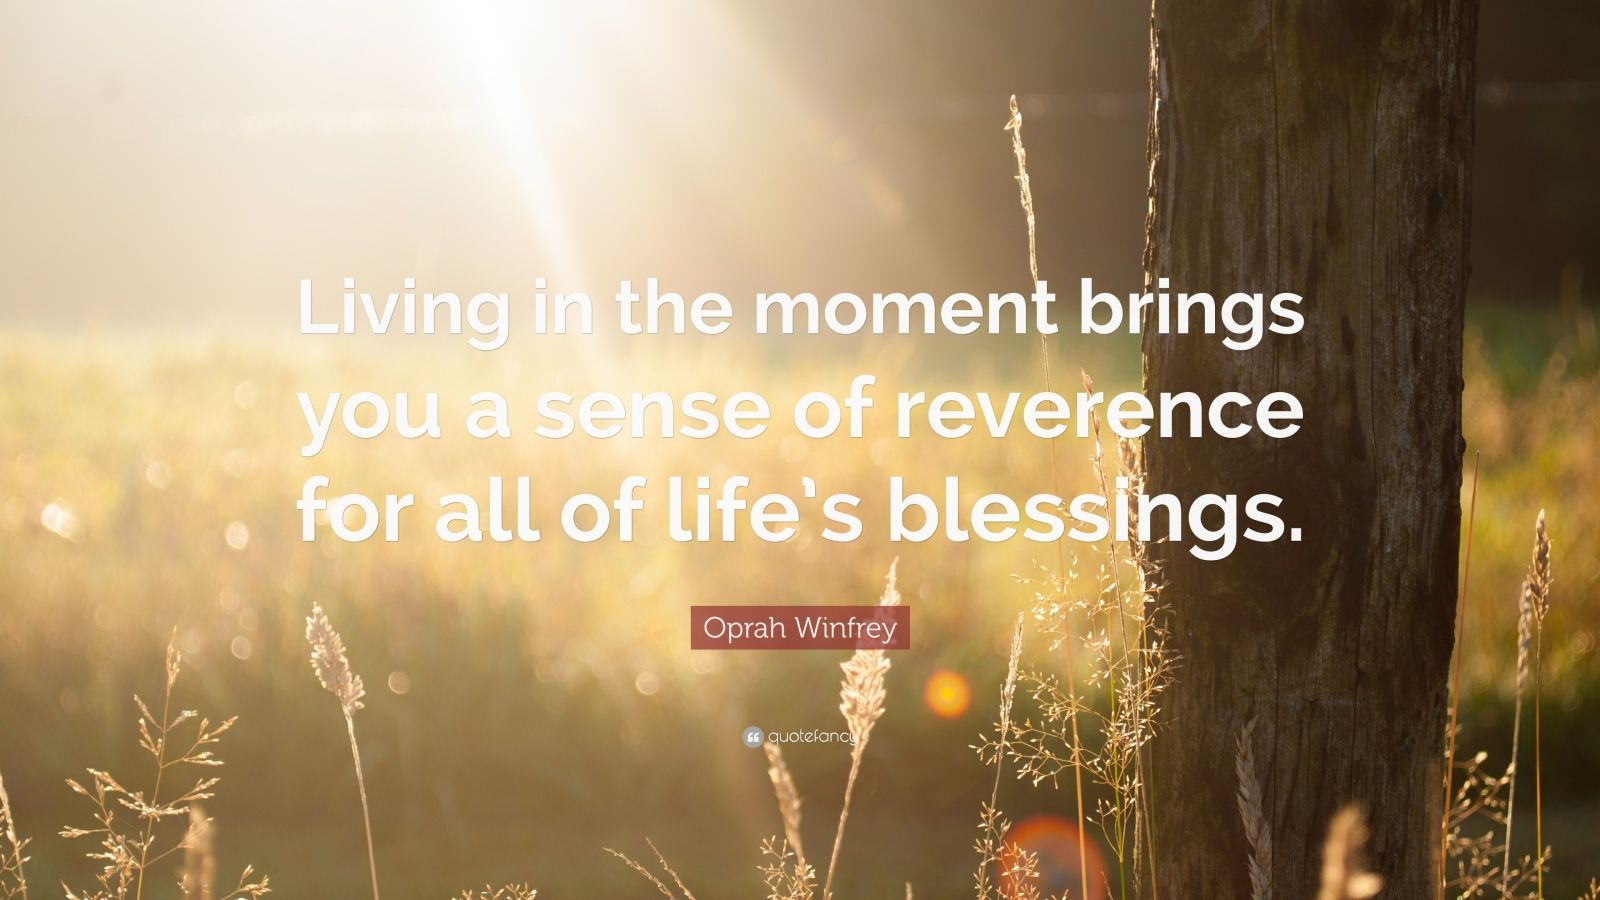 """Oprah Winfrey Quote: """"Living in the moment brings you a sense of reverence for all of life's blessings."""""""